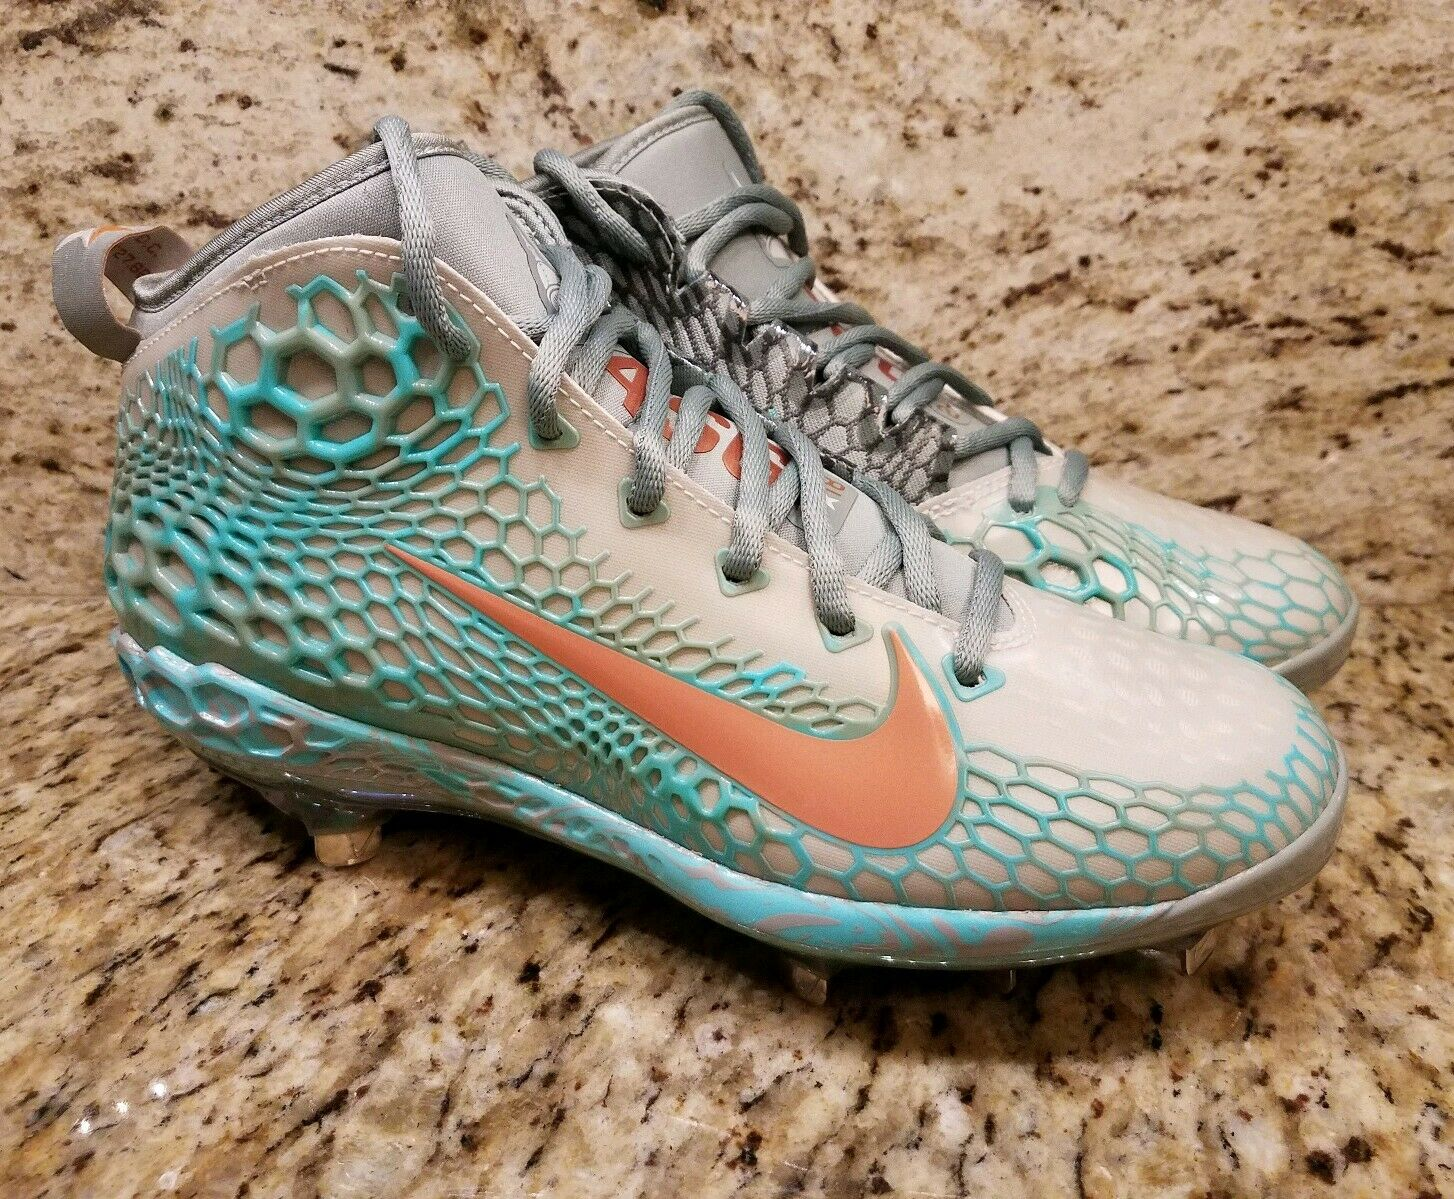 Nike Zoom Trout 5 2018 All Star Game Exclusive BSBL Cleats AH4706-033 SZ 8.5 NEW